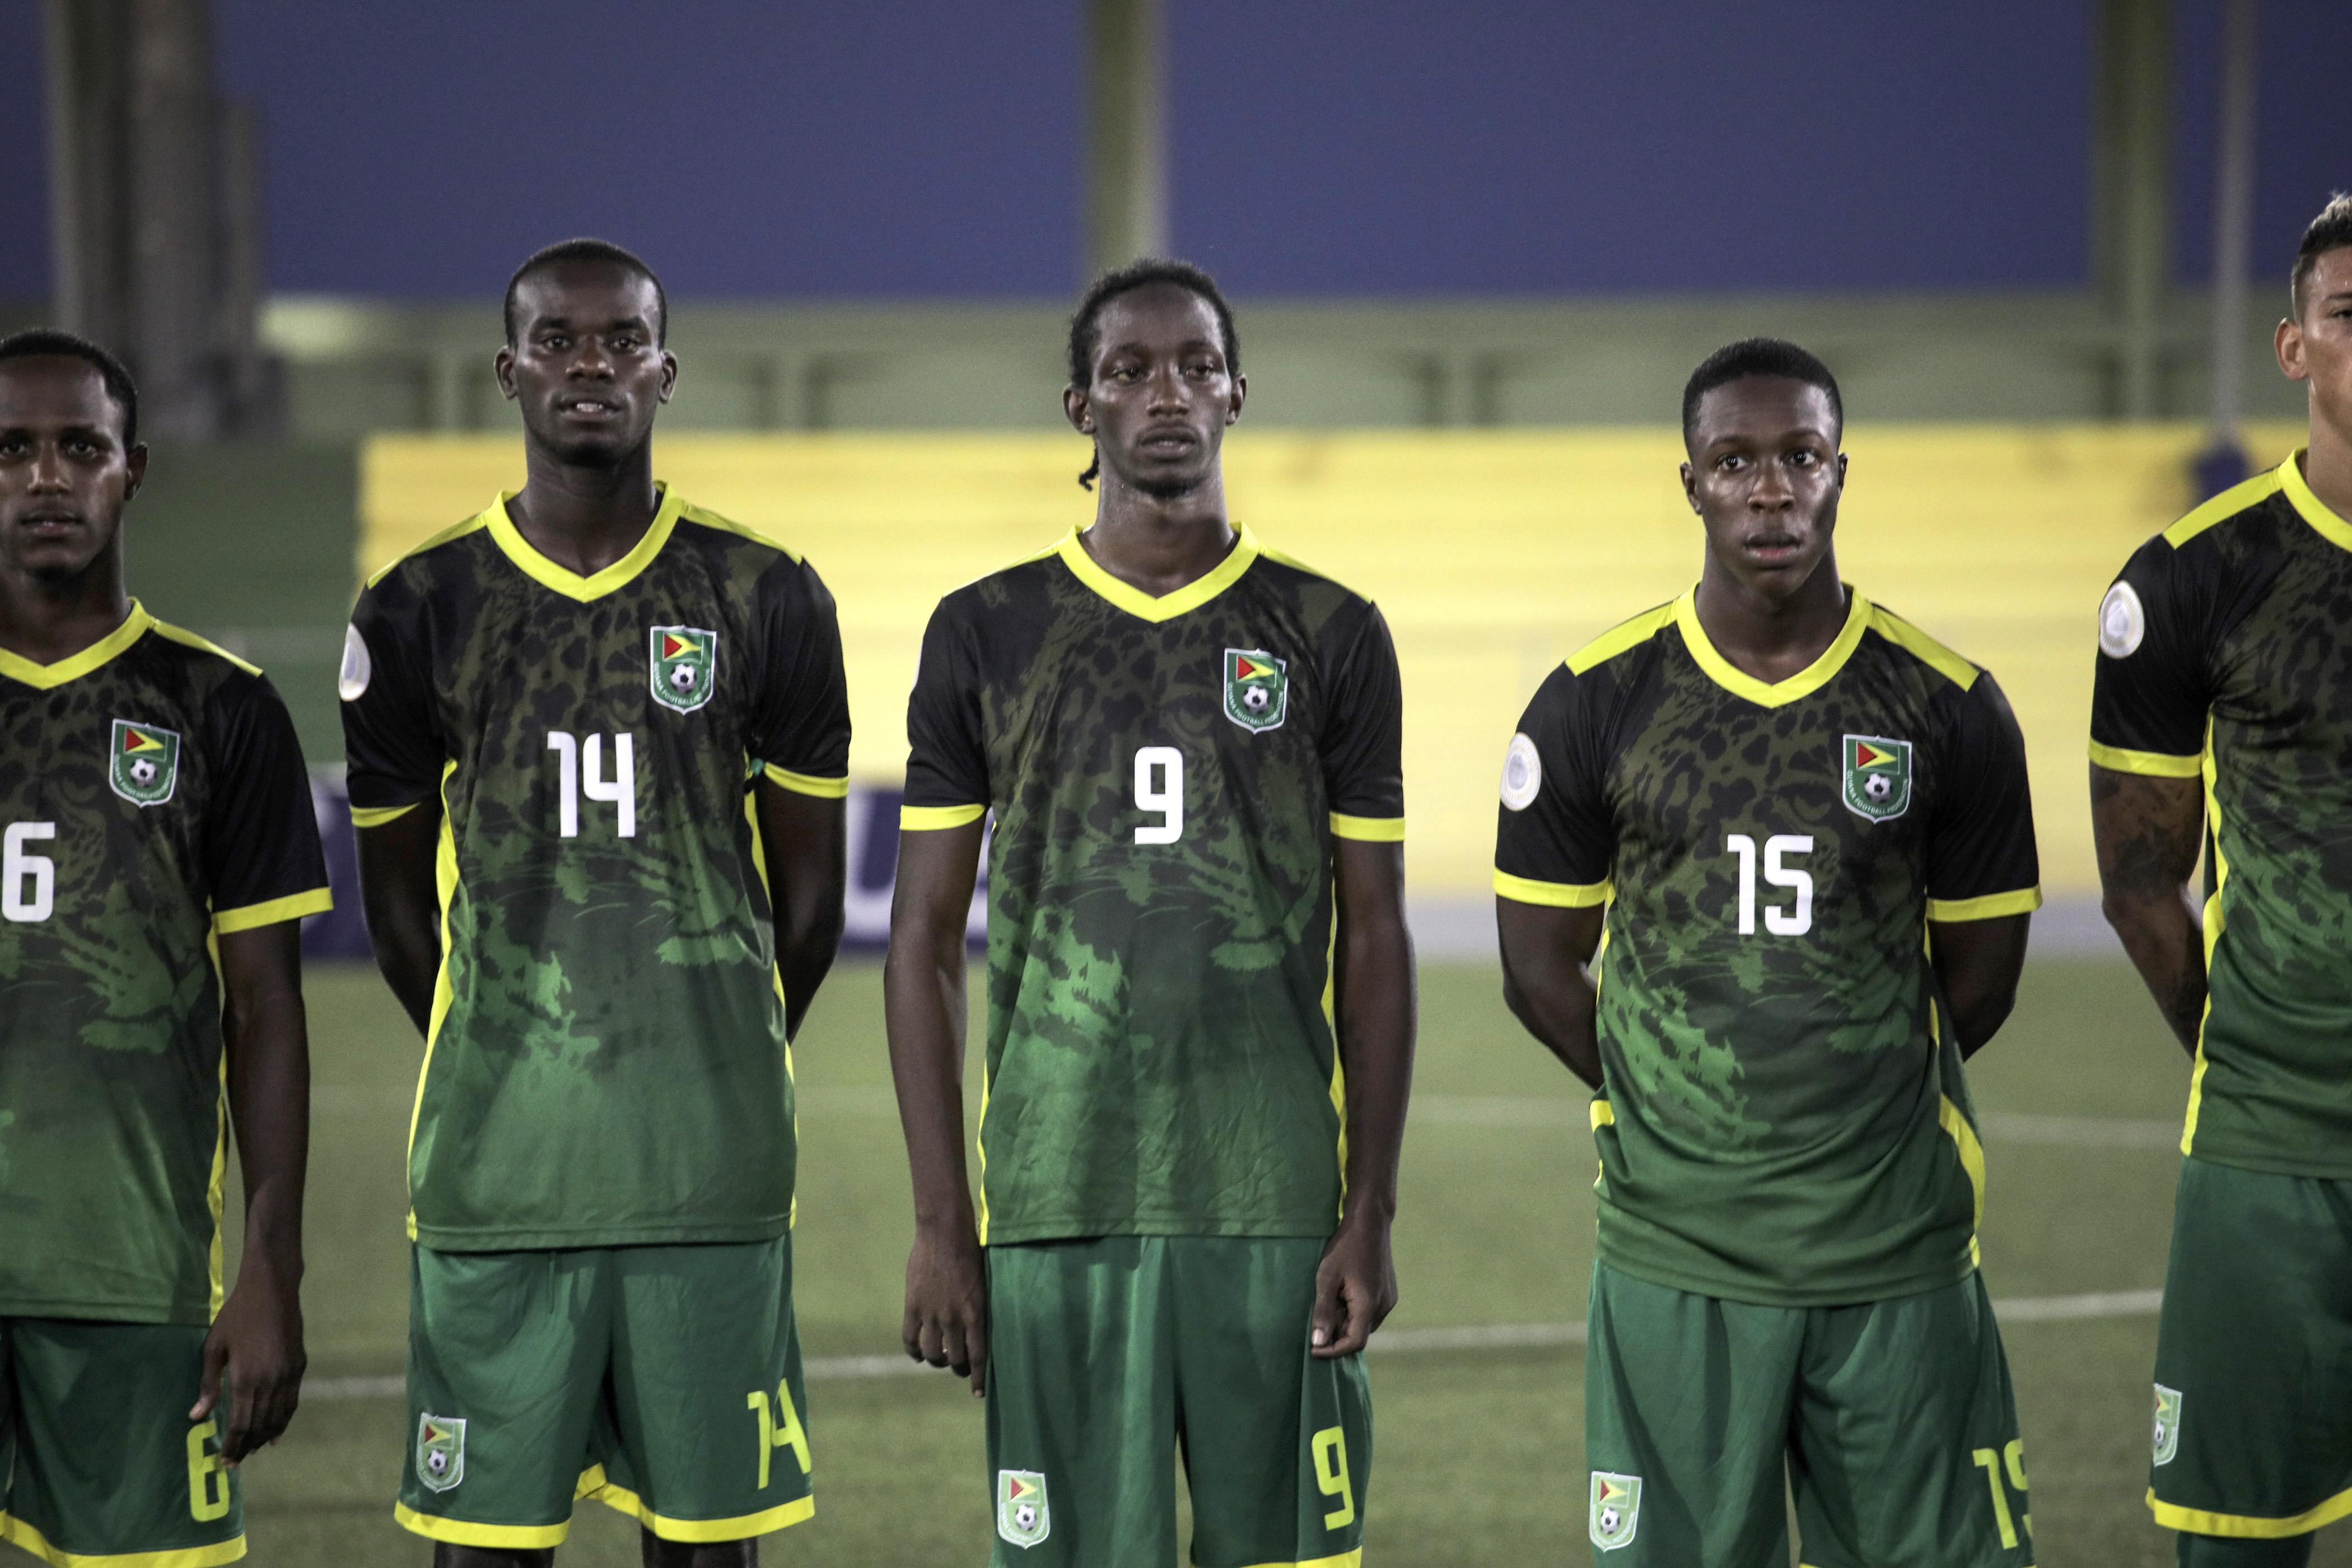 Guyana and Jamaica face off for top spot in Group C of League B